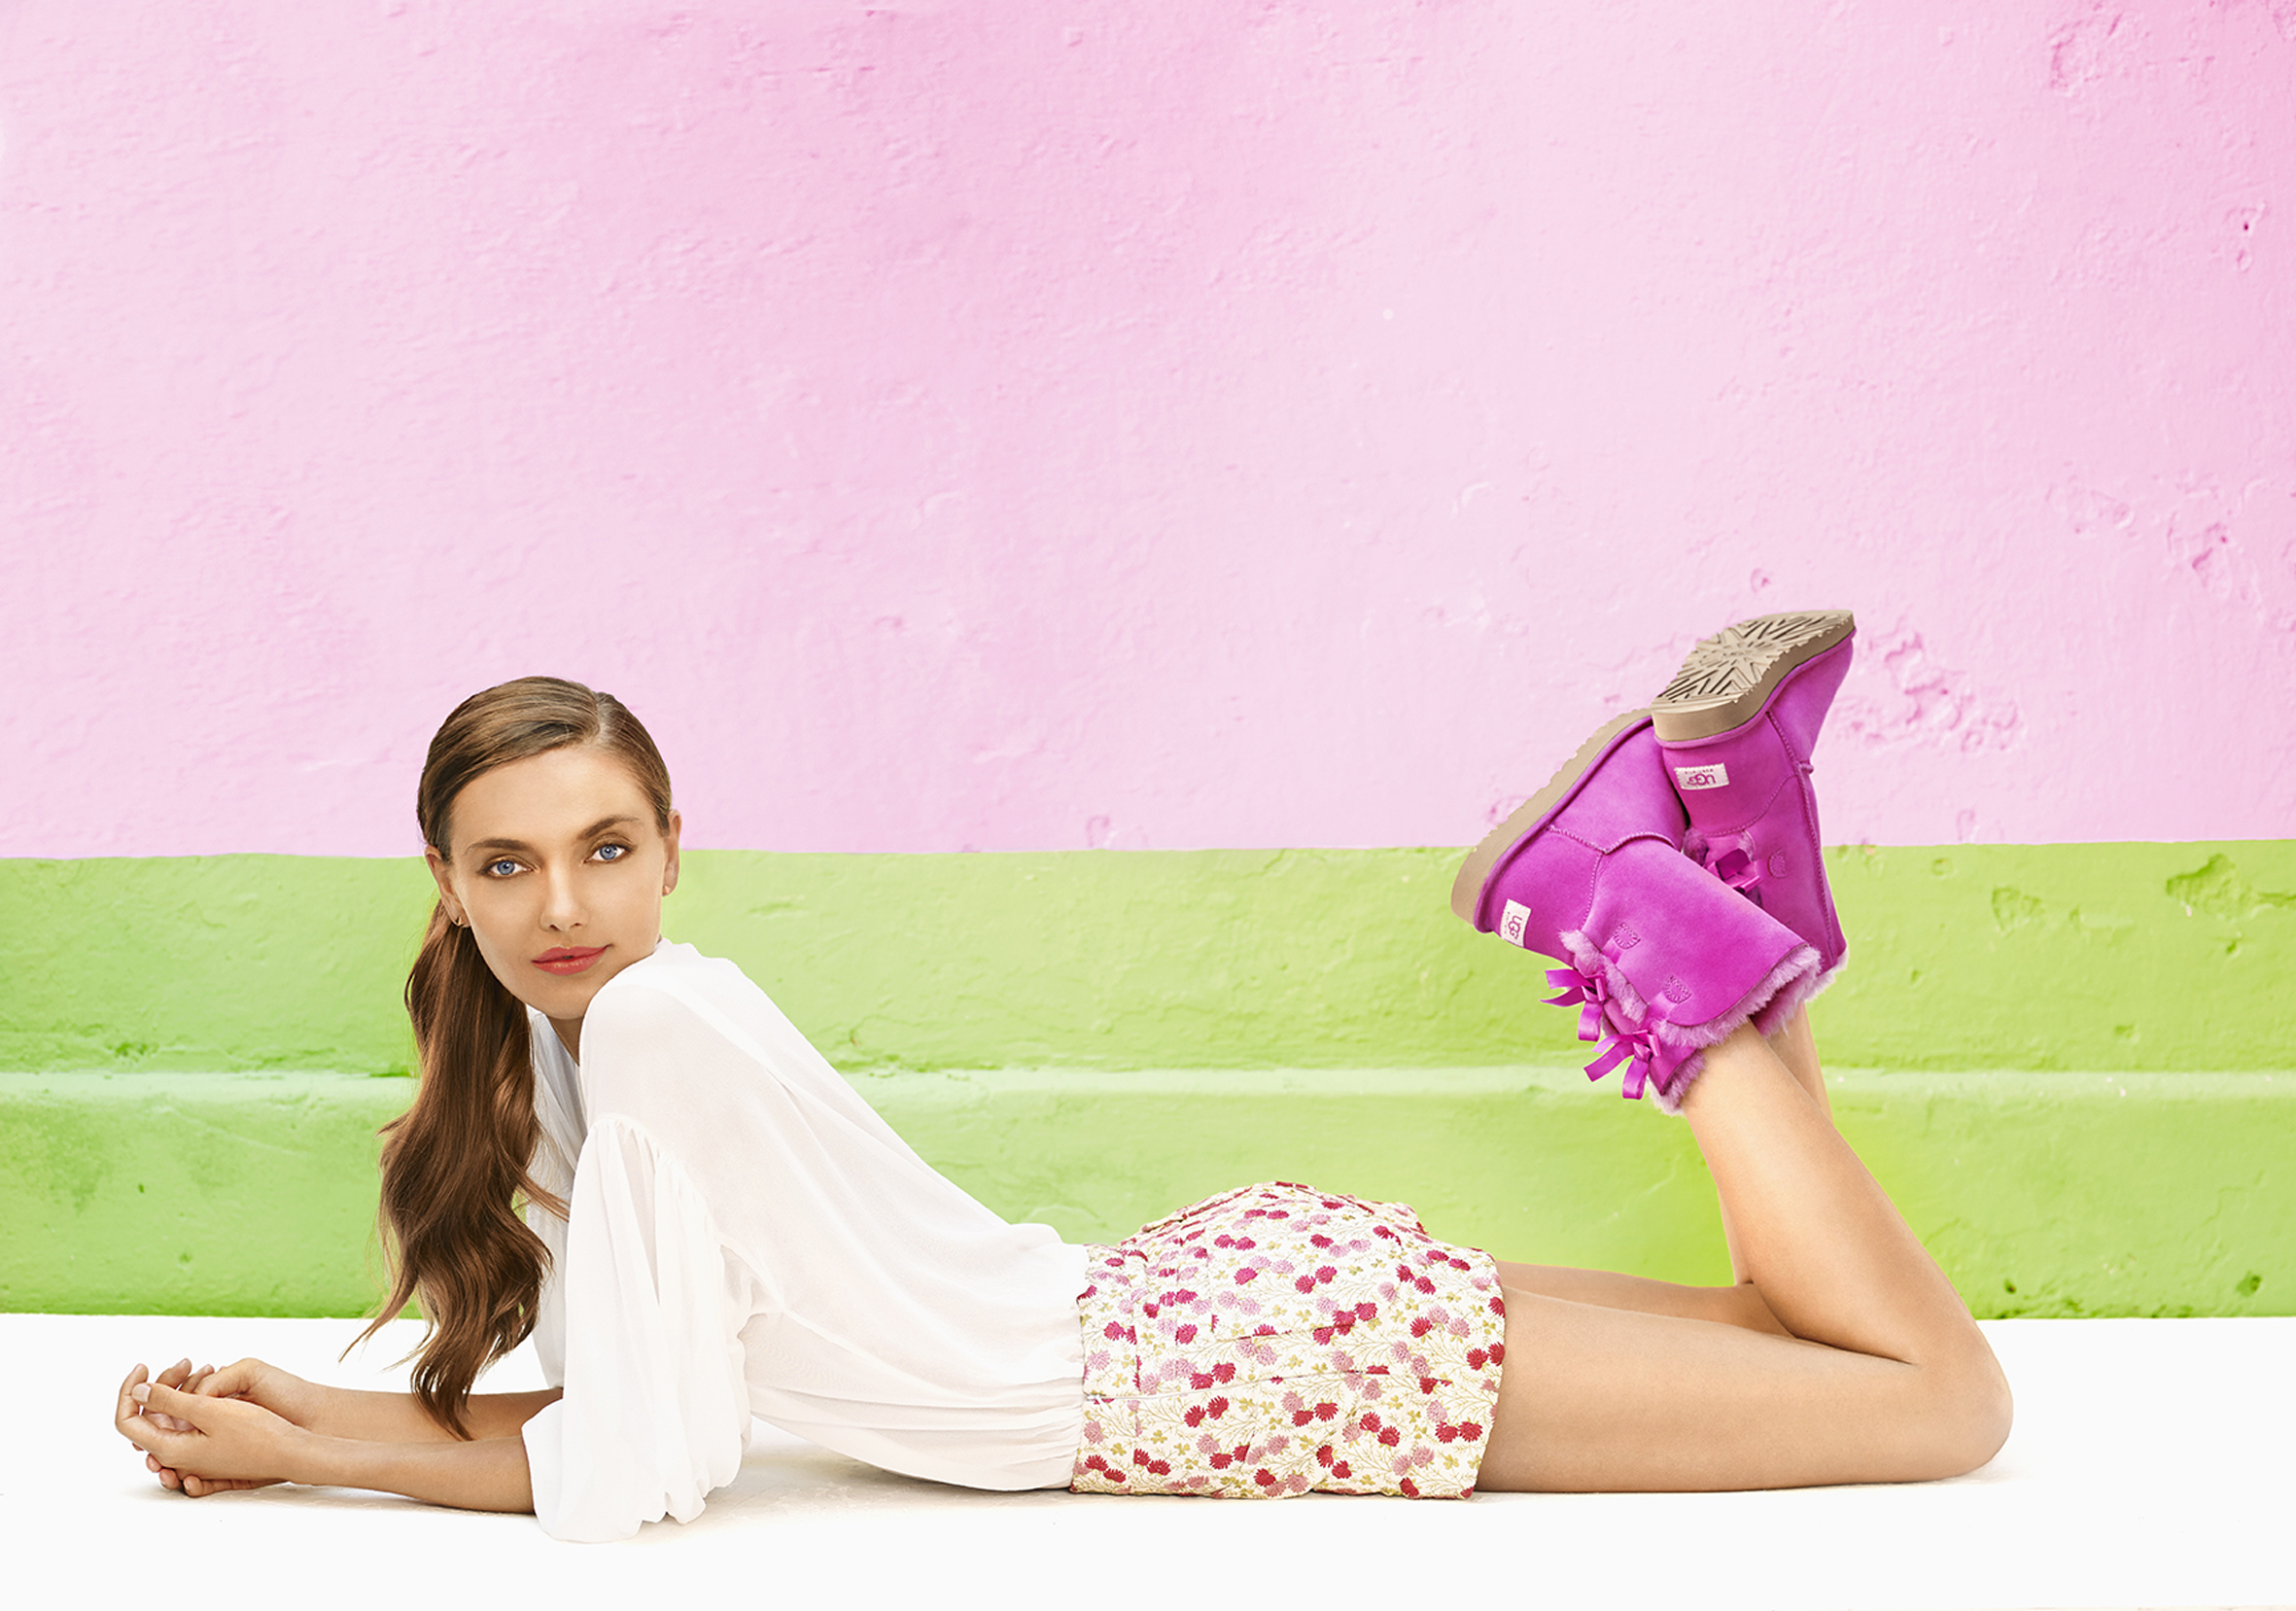 SS14_UGG_Campaign_women02